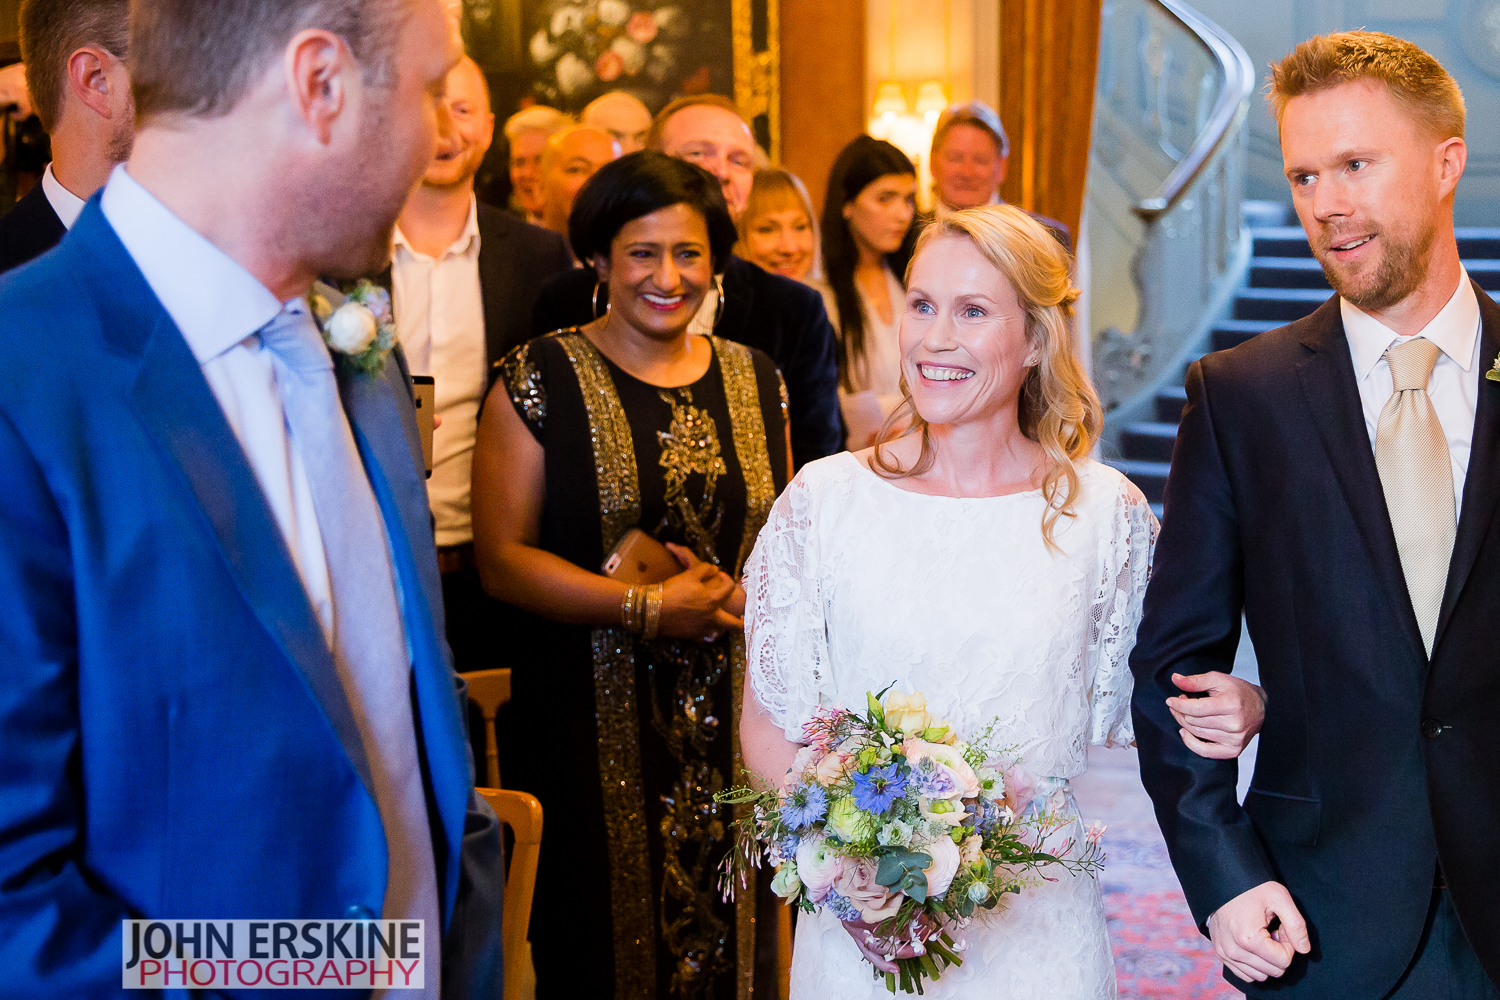 Bride Groom Wedding First Look Smiles Mayfair Wedding